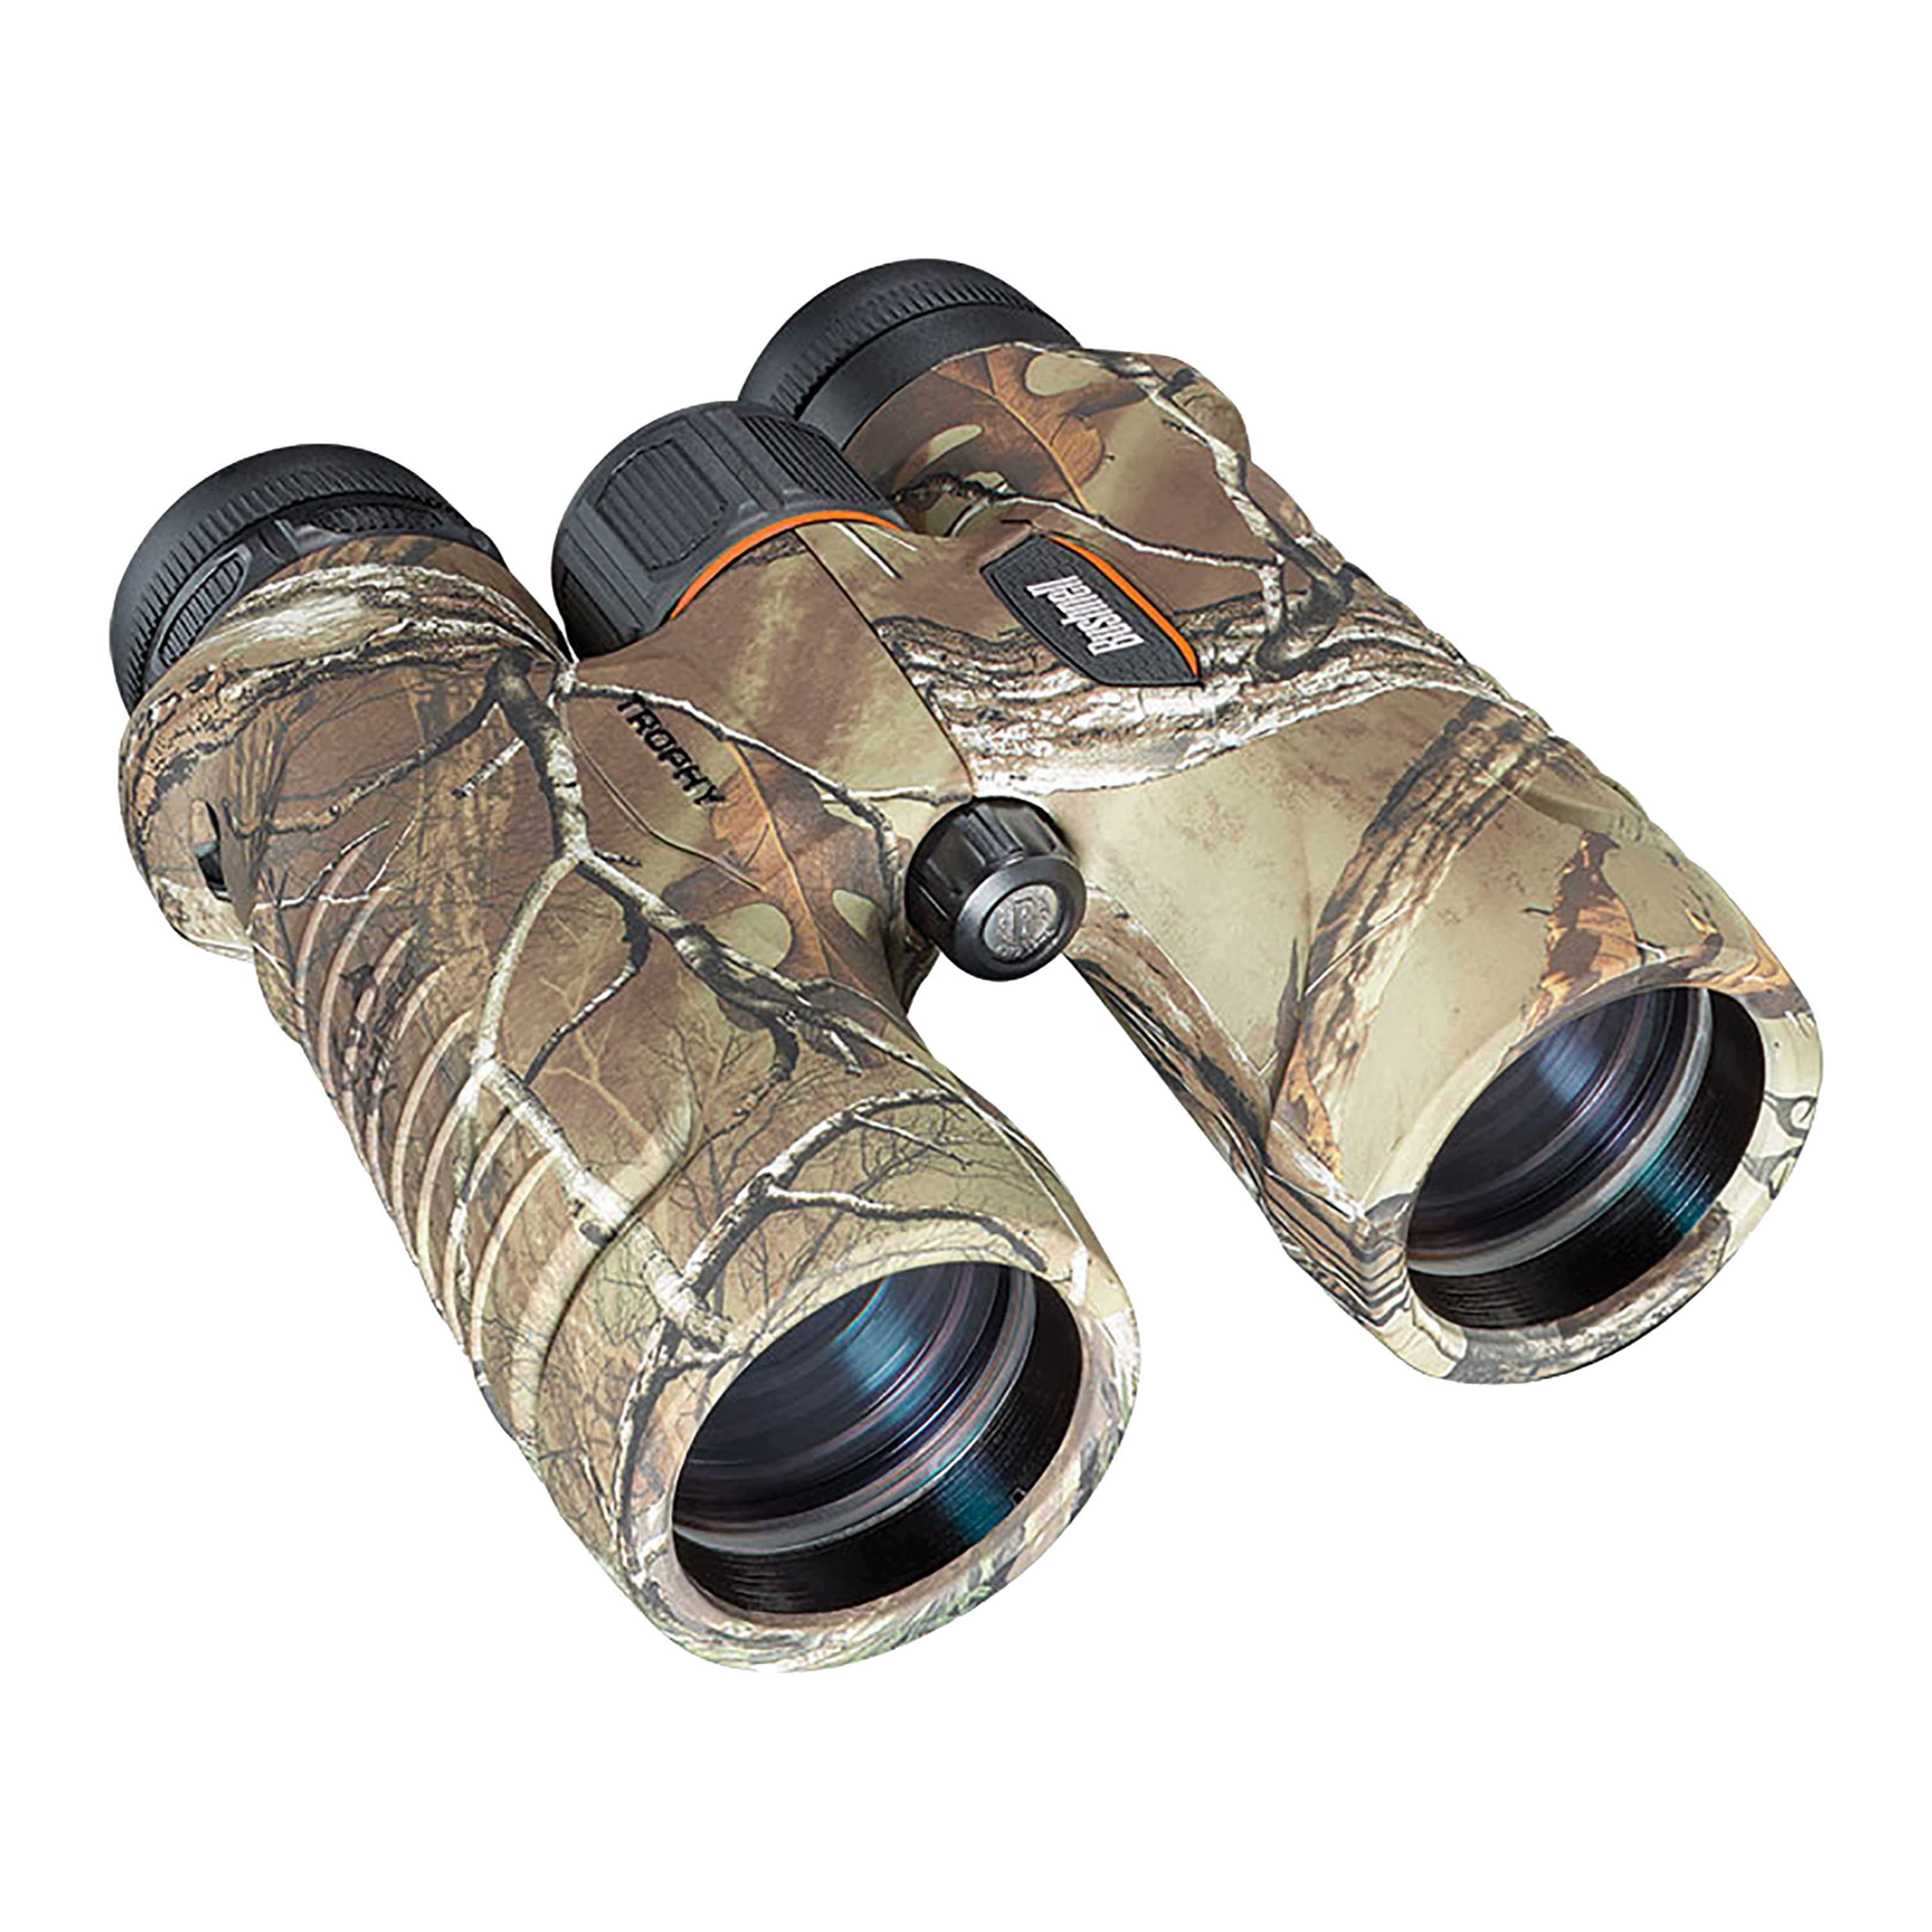 Bushnell Trophy Binoculars 8X42mm, WP, PC3, Roof Prism, Realtree Xtra by Bushnell